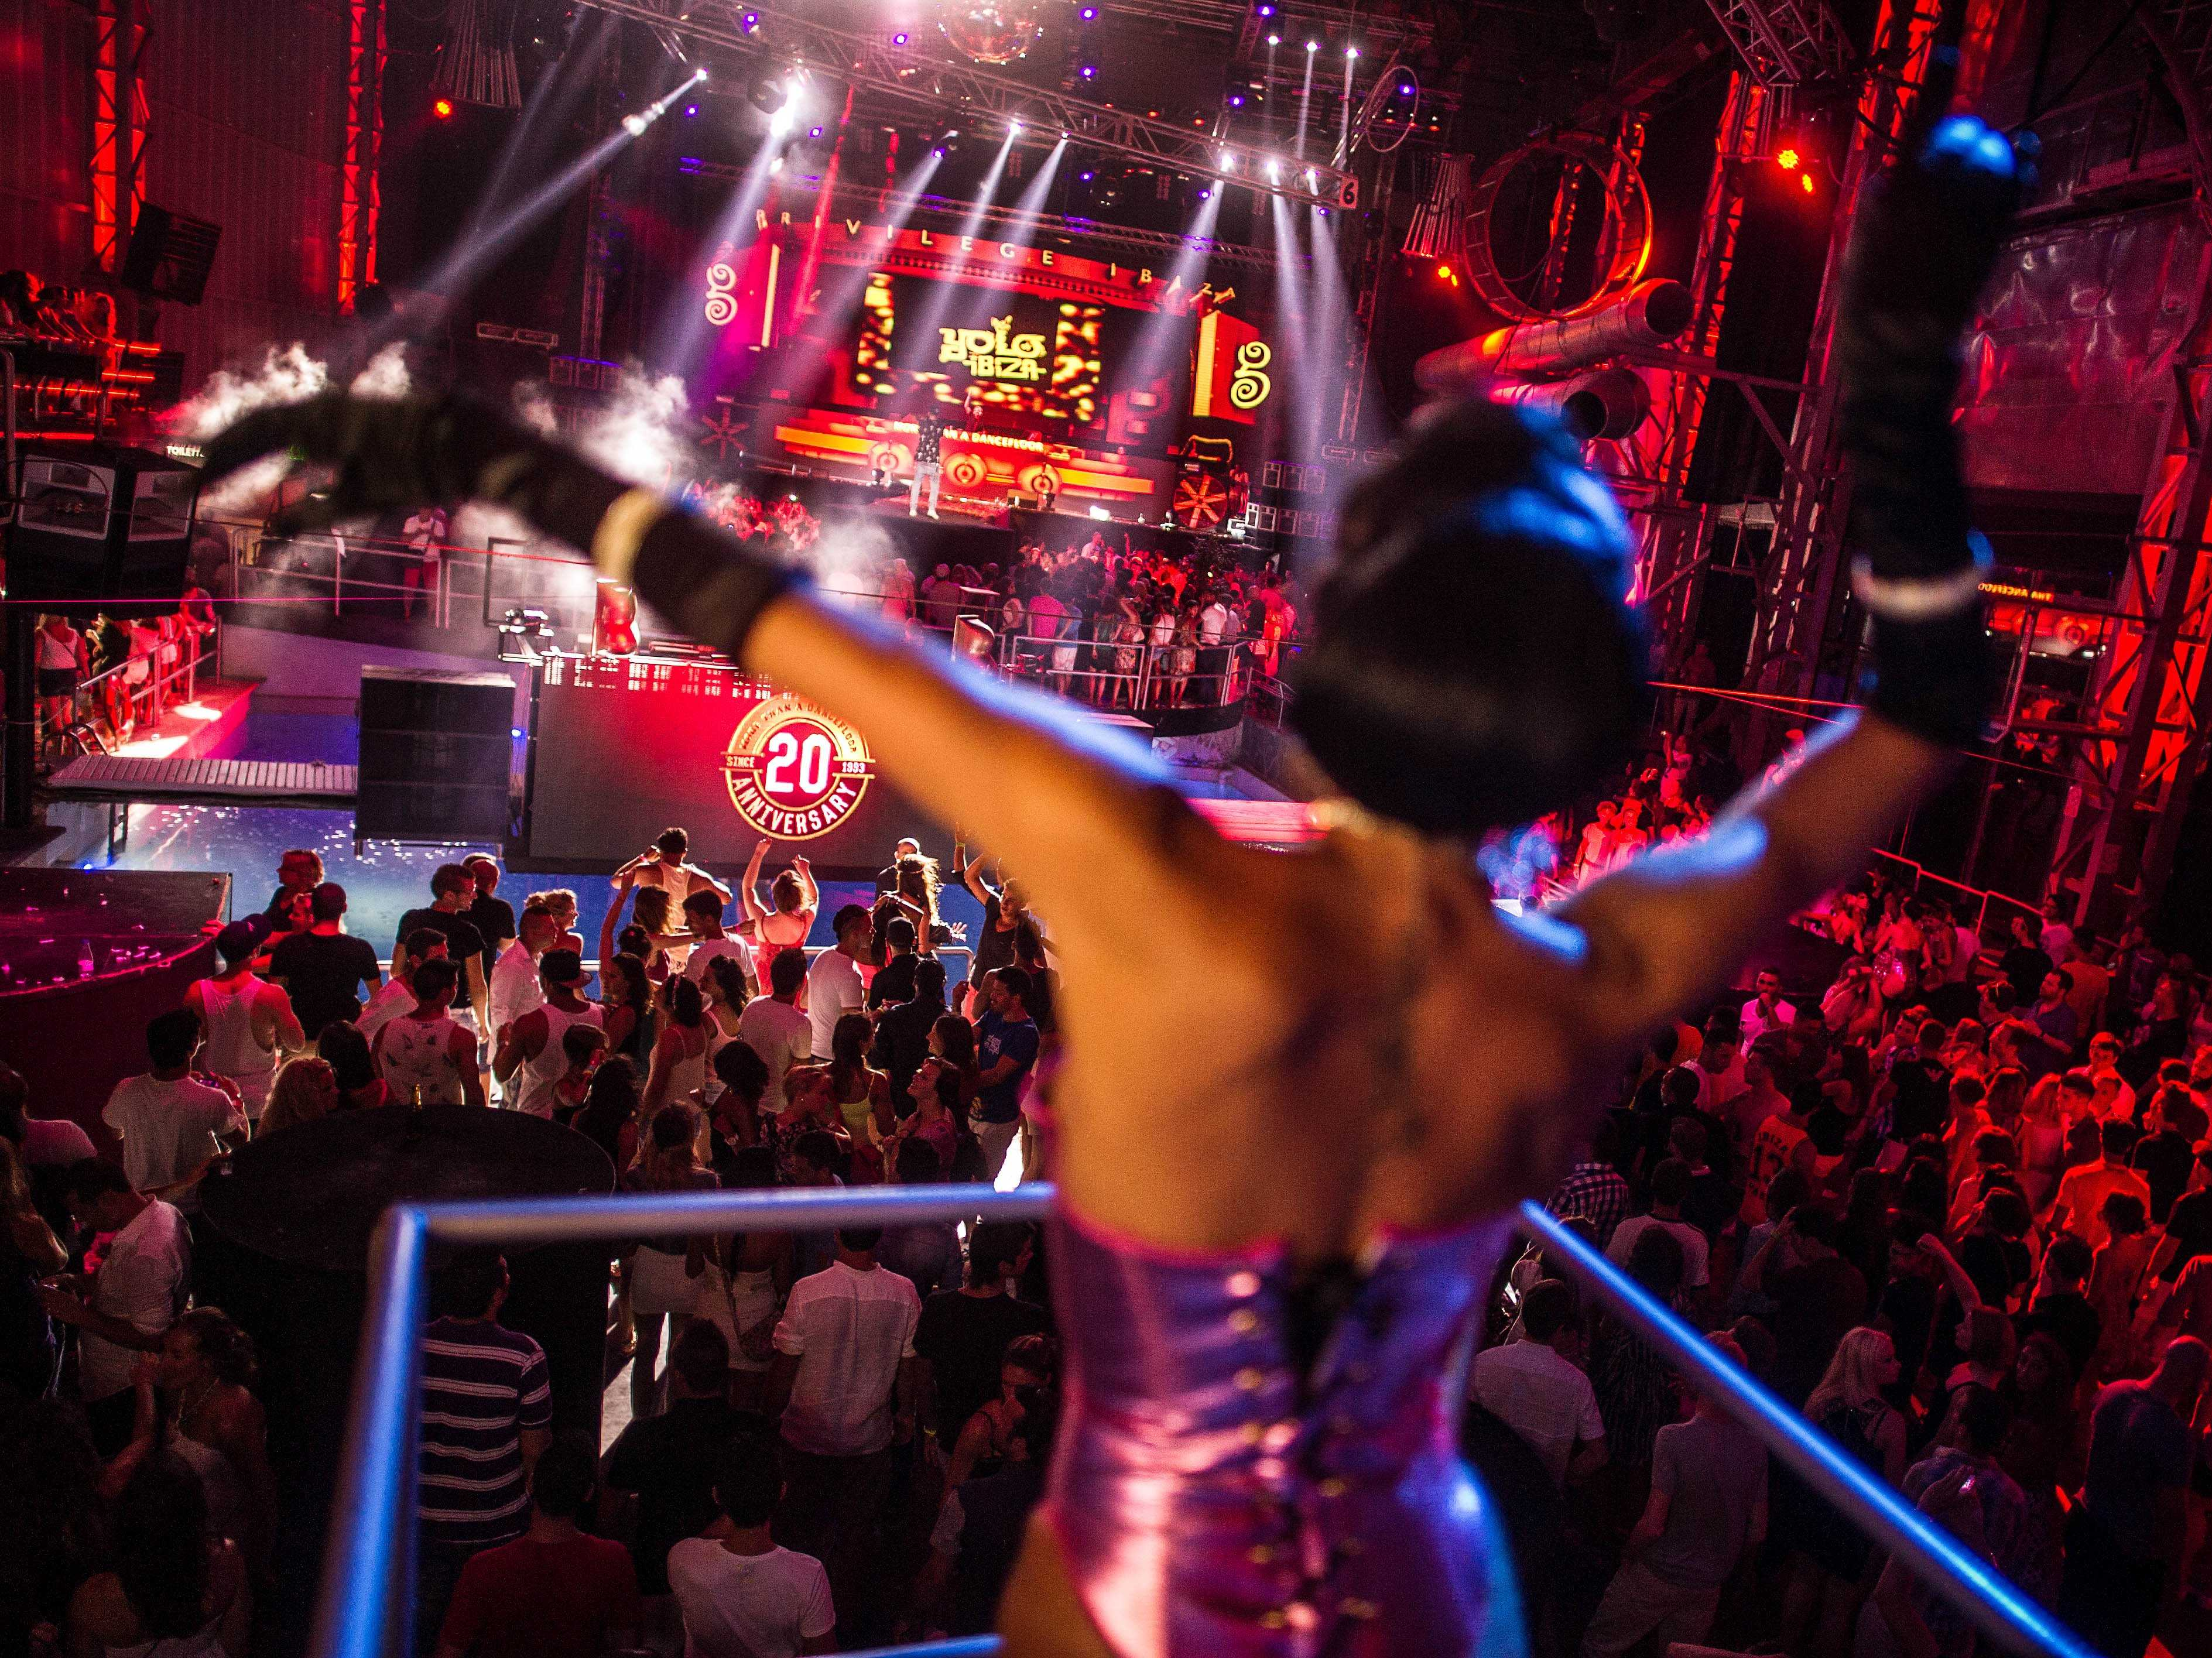 Stay up all night partying on the Spanish island of Ibiza.